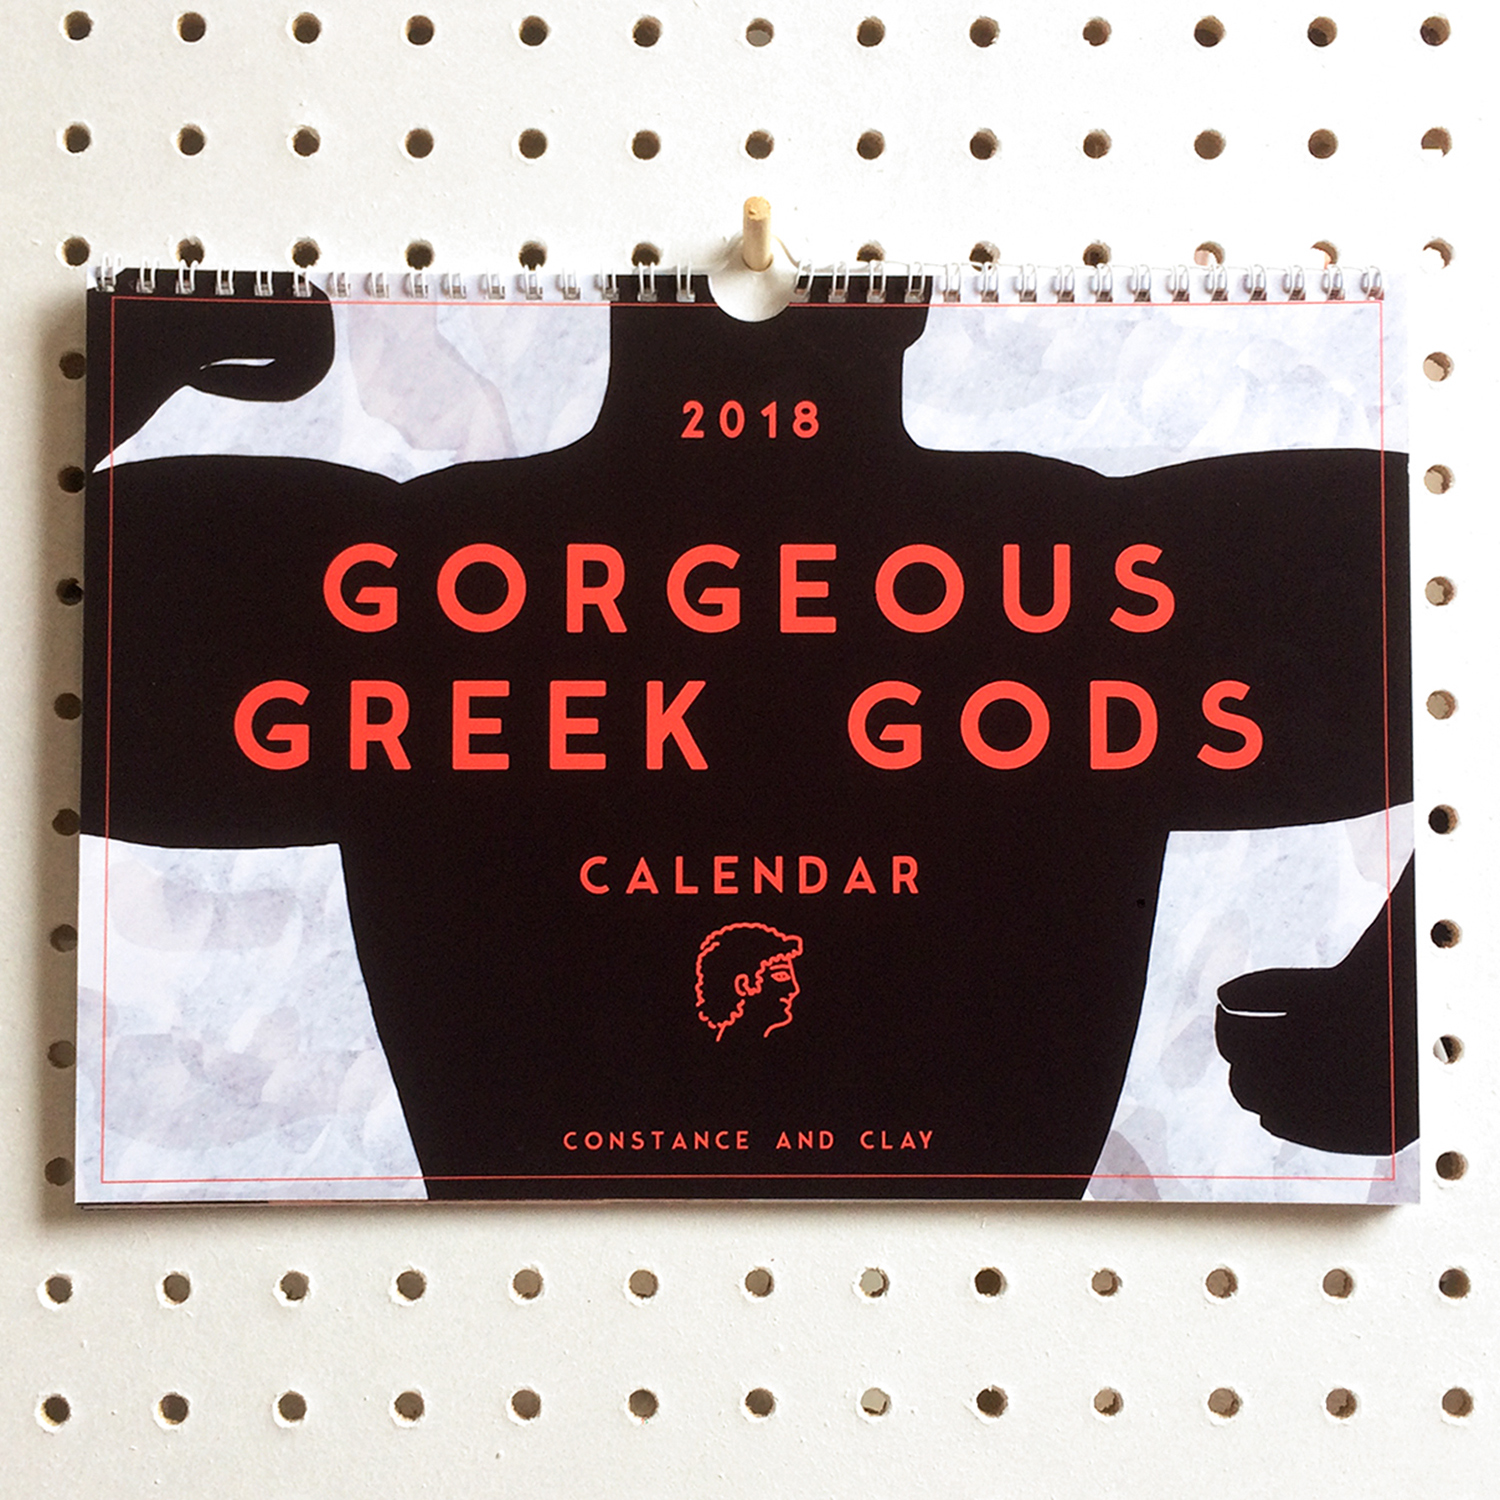 Constance-and-Clay-Greek-Gods-Calendar.jpg